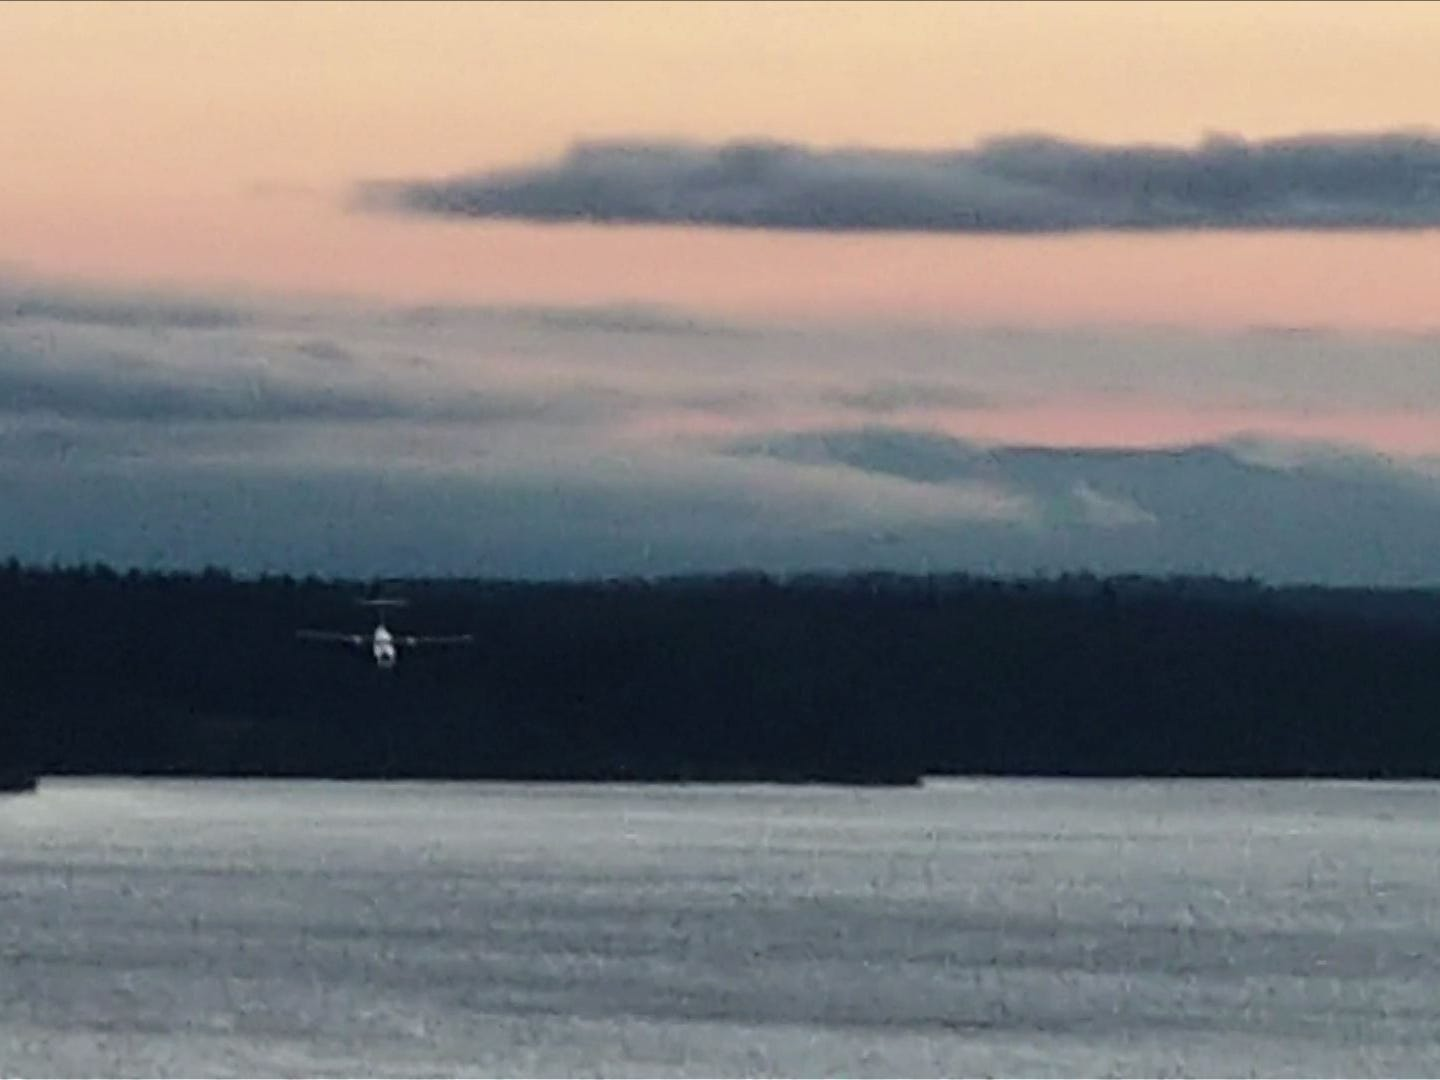 """This frame grab taken from footage filmed by bystander John Wauldron on August 10, 2018 with his Galaxy S8 at Chambers Bay Park and Golf Course in University Place Washington, shows an empty passenger airplane, stolen from the Seattle-Tacoma airport, making an unlikely upside-down aerial loop, then flying low over Puget Sound before crashing into the sparsely populated Ketron Island in the northwestern US state of Washington. - An apparently suicidal mechanic stole an empty passenger plane from the Seattle-Tacoma airport late August 10, 2018, took it for a brief flight then crashed it in an incident officials said was unrelated to terrorism. Two military F-15s were scrambled to chase the stolen plane, but local officials said the jets """"were not involved in the crash."""" Video taken by a bystander John Wauldron, showed the passenger airplane making an unlikely upside-down aerial loop, then flying low over Puget Sound before crashing into the sparsely populated Ketron Island in the northwestern US state of Washington. (Photo by Handout / John Wauldron / AFP) / RESTRICTED TO EDITORIAL USE - MANDATORY CREDIT """"AFP PHOTO / John WAULDRON """" - NO MARKETING NO ADVERTISING CAMPAIGNS - DISTRIBUTED AS A SERVICE TO CLIENTS ---HANDOUT/AFP/Getty Images ORIG FILE ID: AFP_18A8DE"""